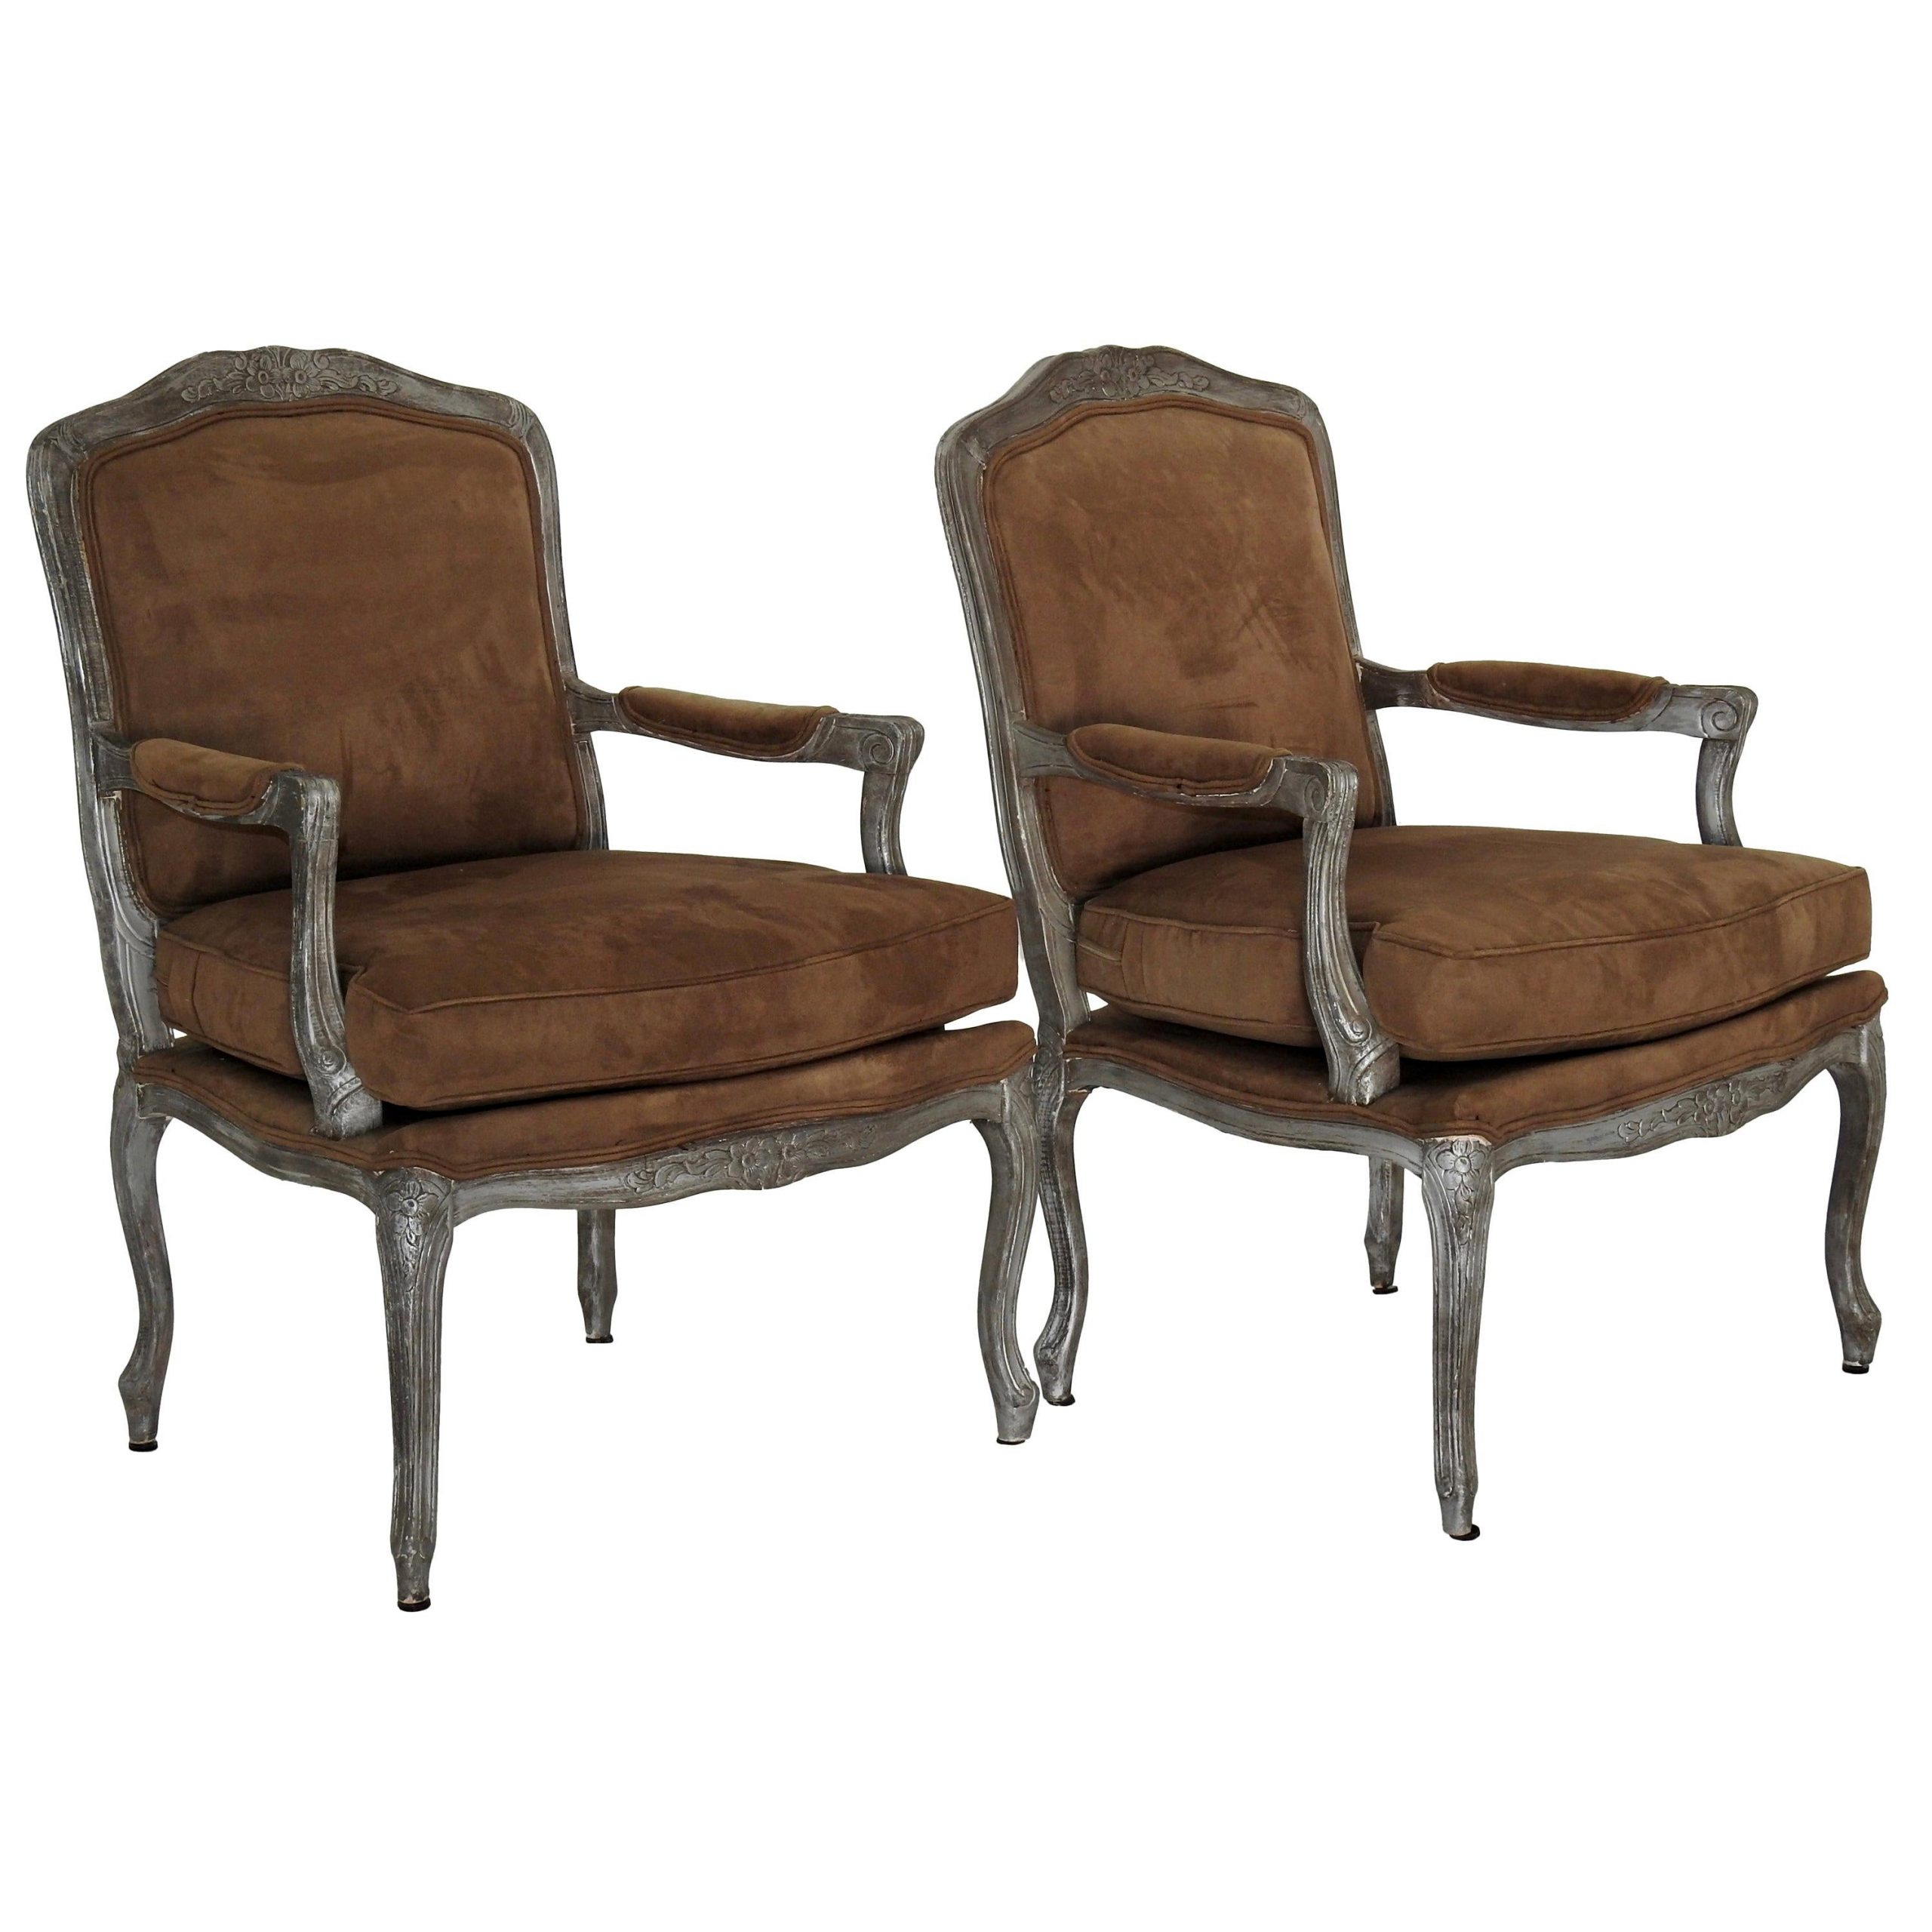 Ralph Lauren Inspired Chair For Gallin Wingback Chairs (View 13 of 15)